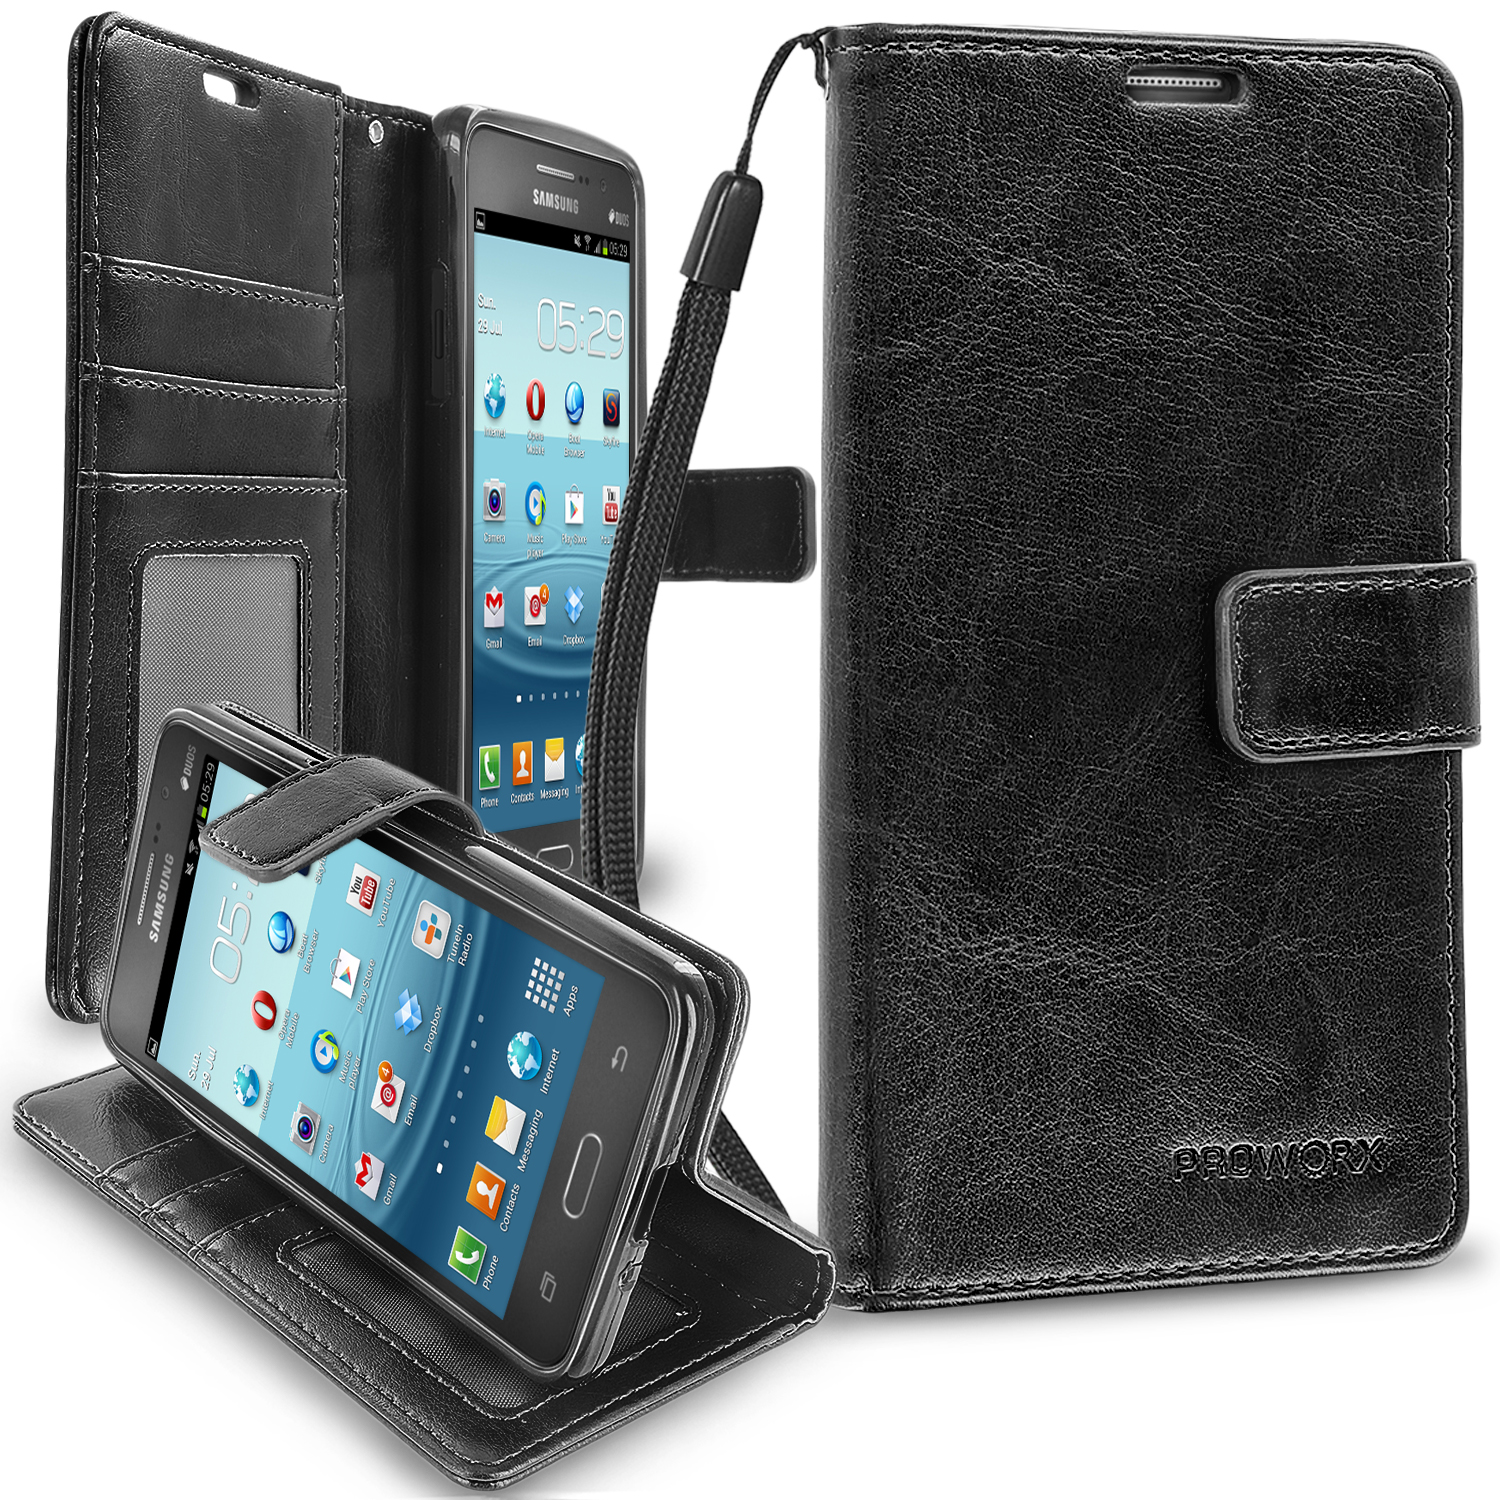 Samsung Galaxy Grand Prime LTE G530 Black ProWorx Wallet Case Luxury PU Leather Case Cover With Card Slots & Stand